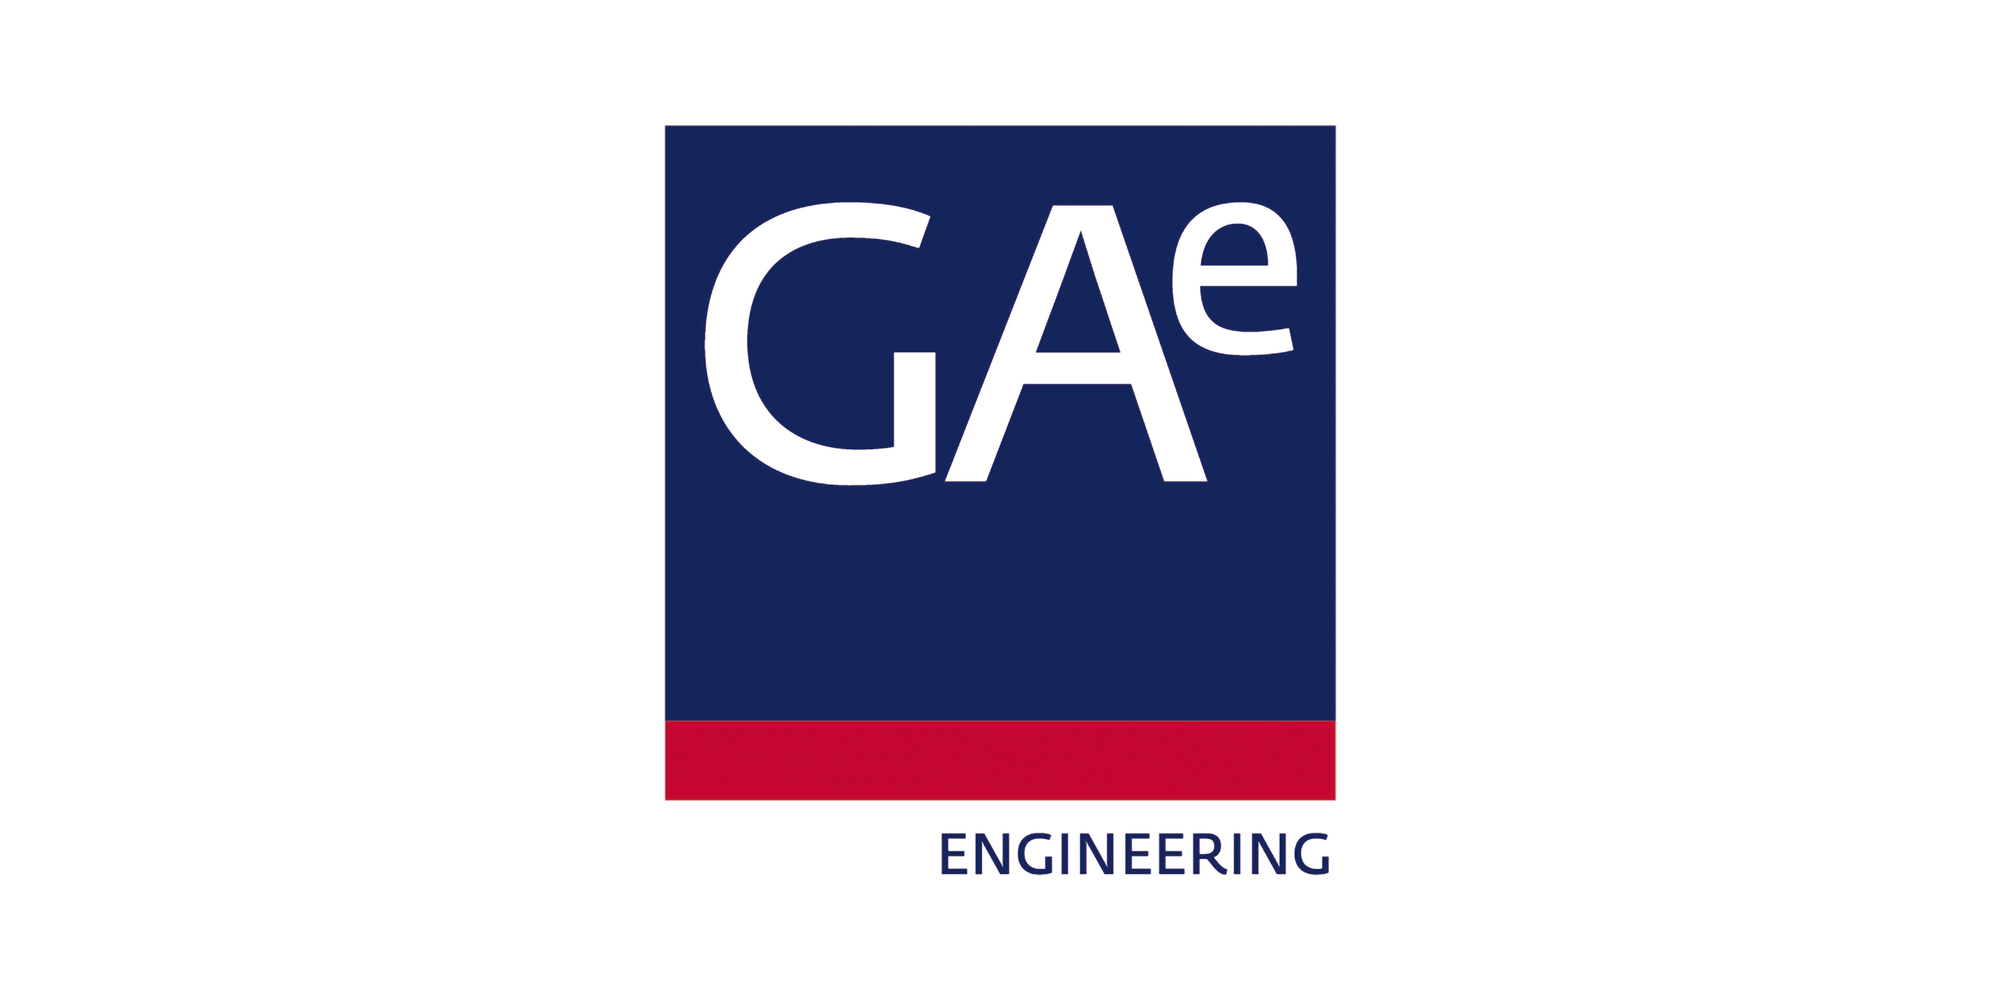 GAE Engineering logo